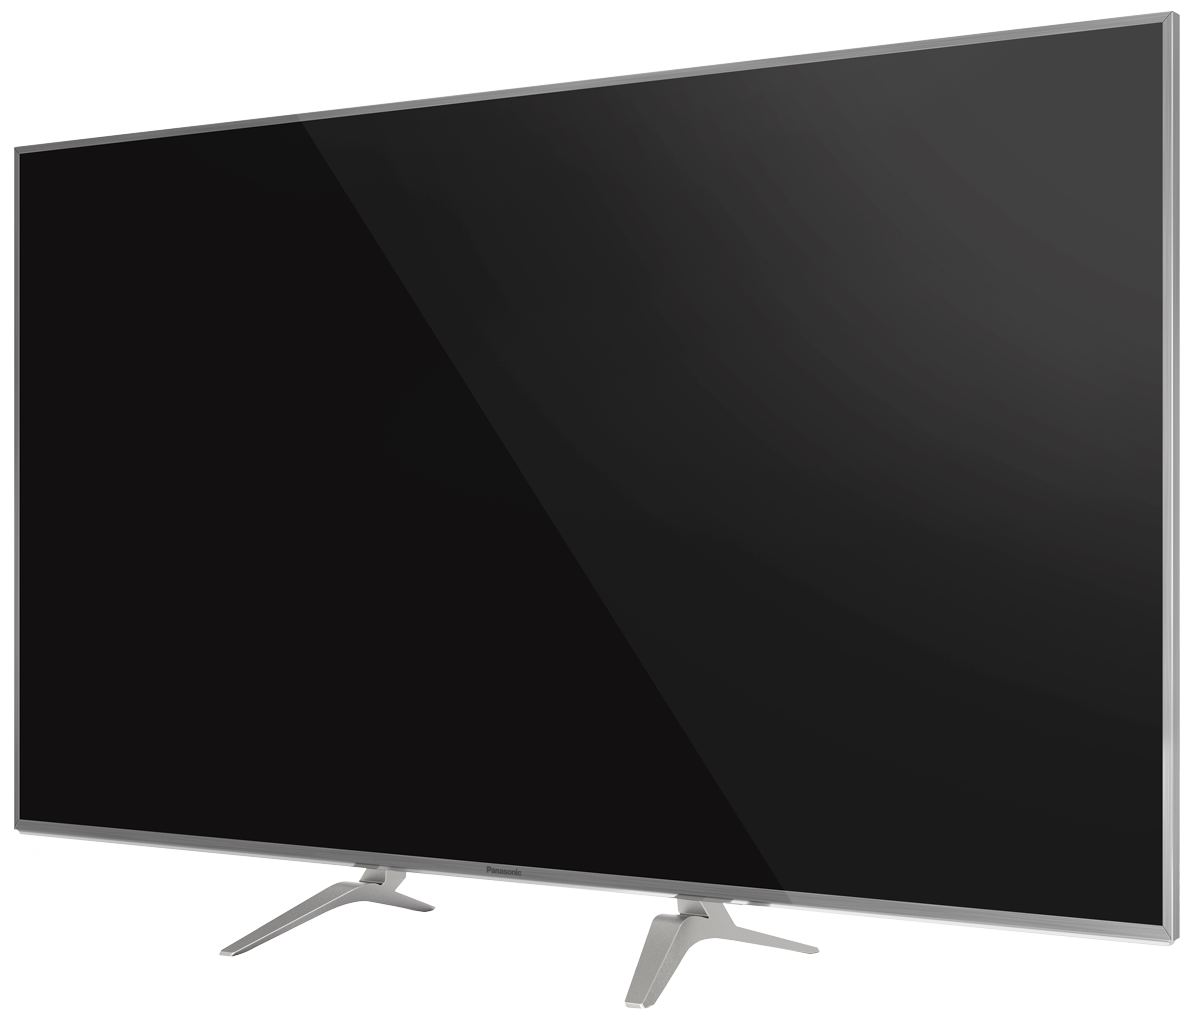 panasonic tx 65dxw784 lcd led tv 65 1800 hz silber g nstig kaufen 60 69 fernseher. Black Bedroom Furniture Sets. Home Design Ideas